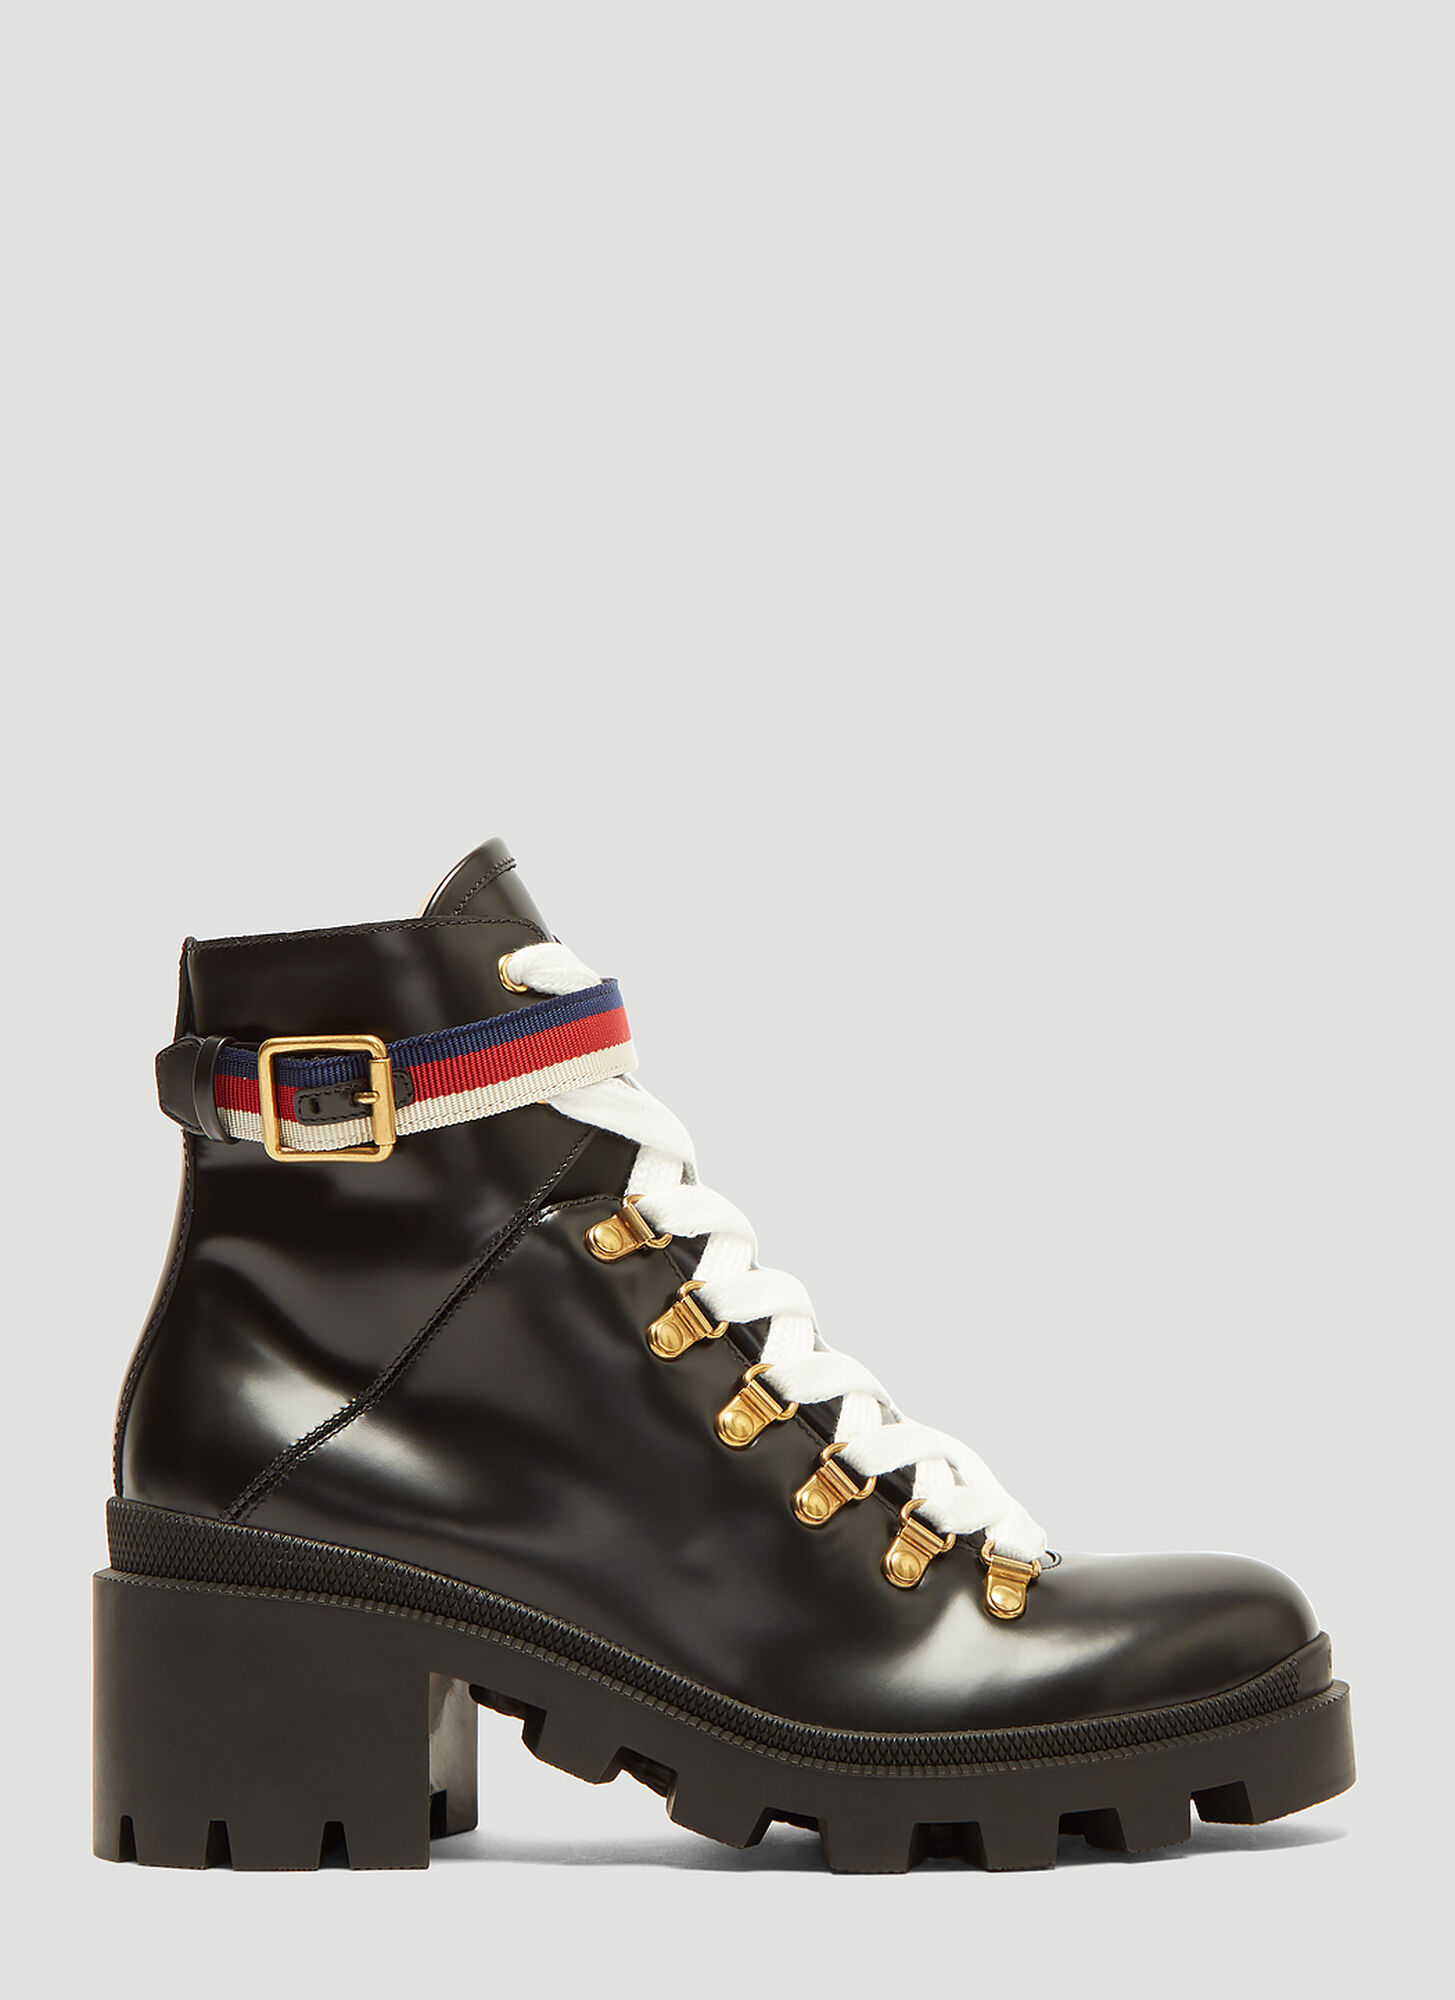 Gucci Trecking Heeled Ankle Boot in Black